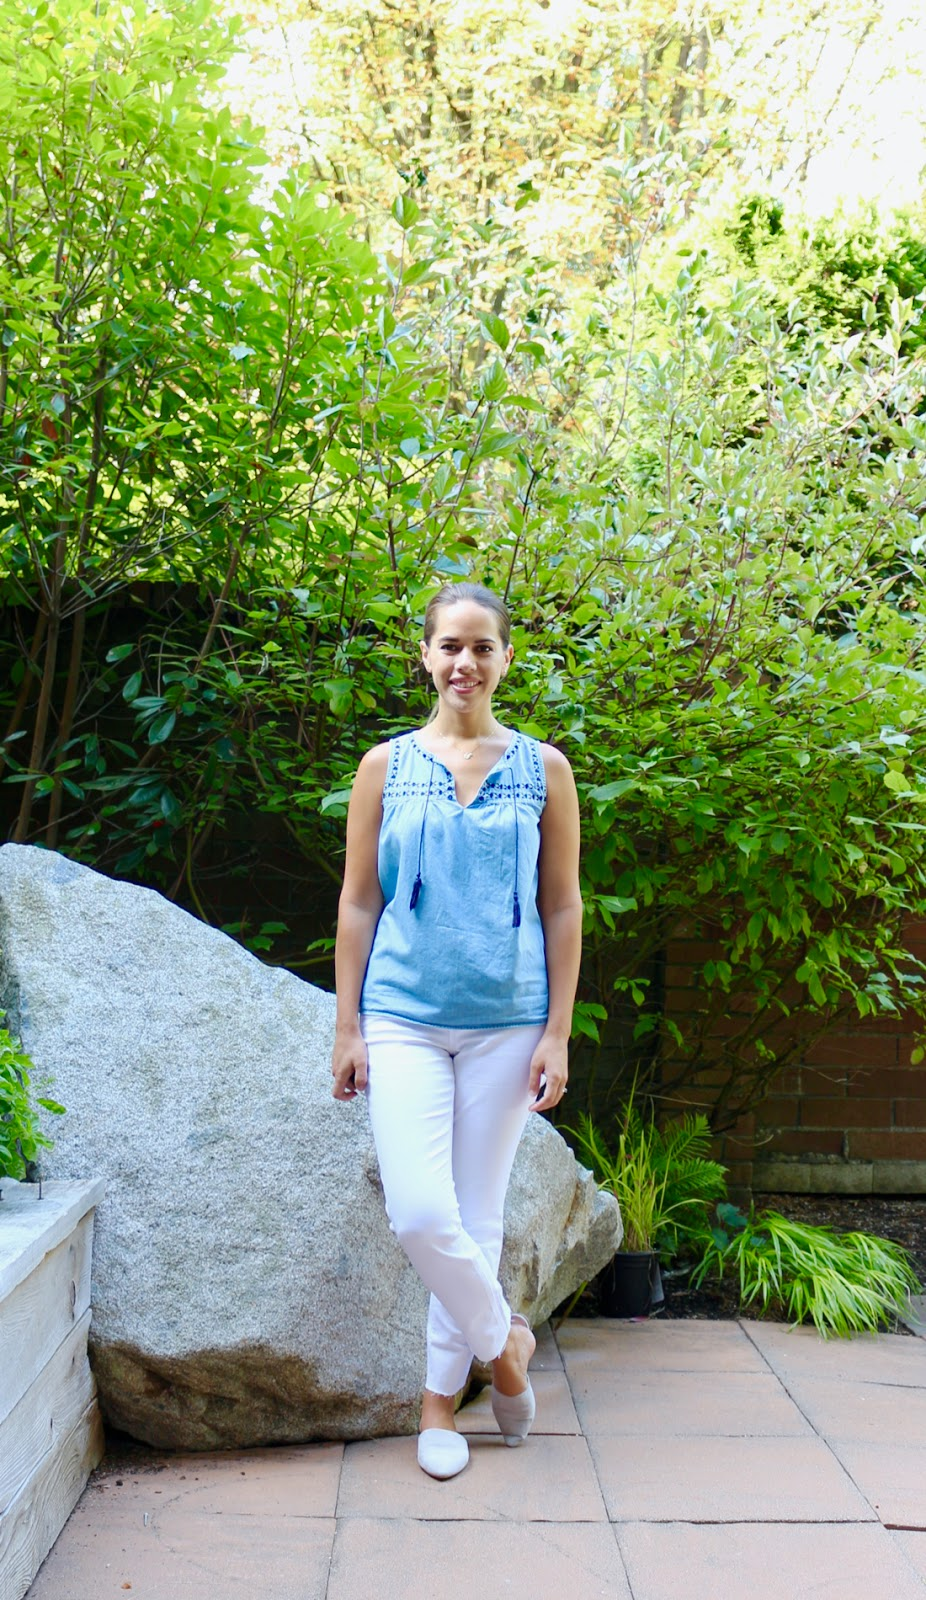 Jules in Flats - Chambray Tassel Tie Top with White Jeans (Business Casual Spring Workwear on a Budget)